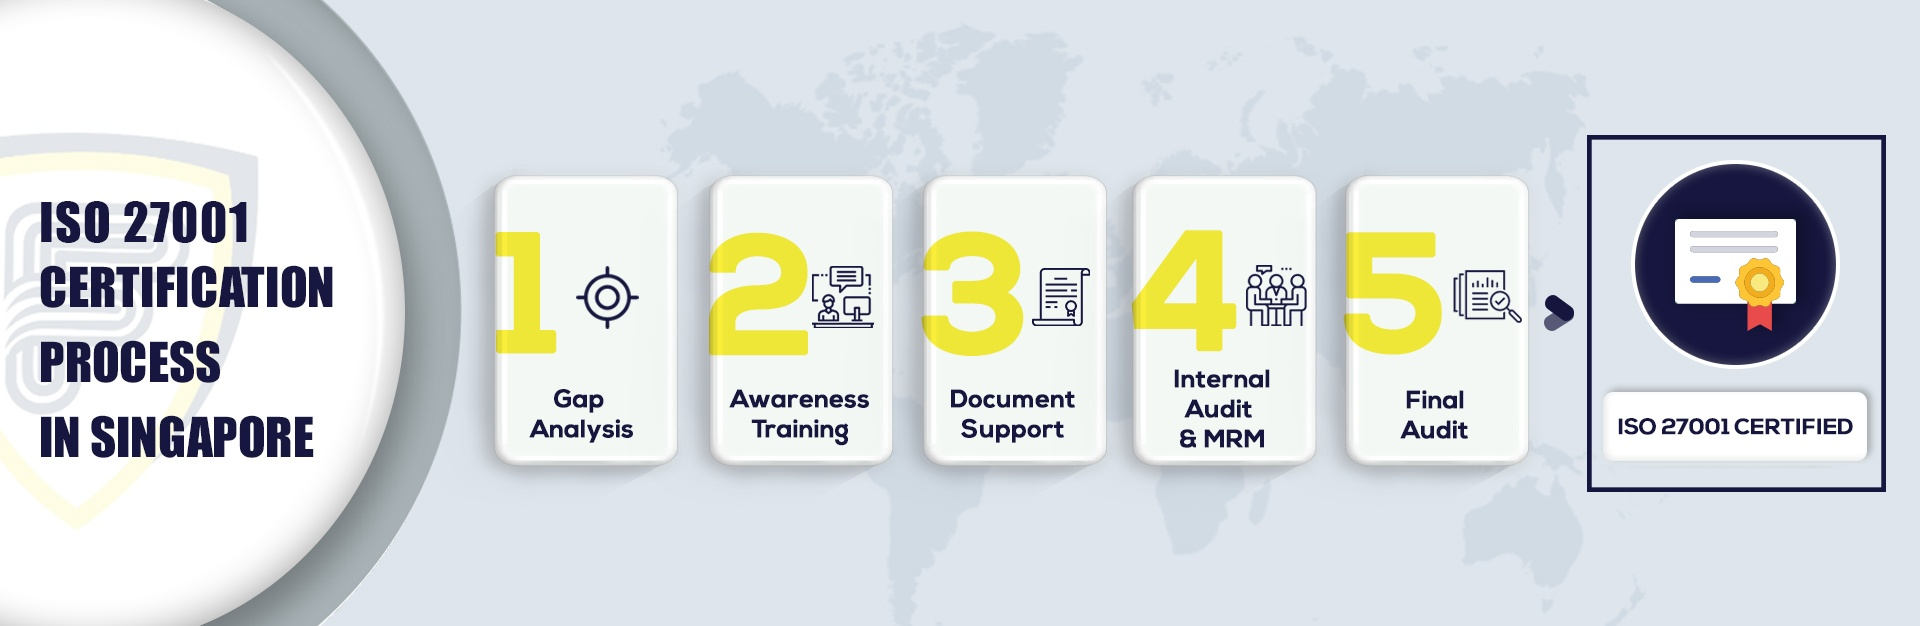 ISO 27001 certification in Singapore